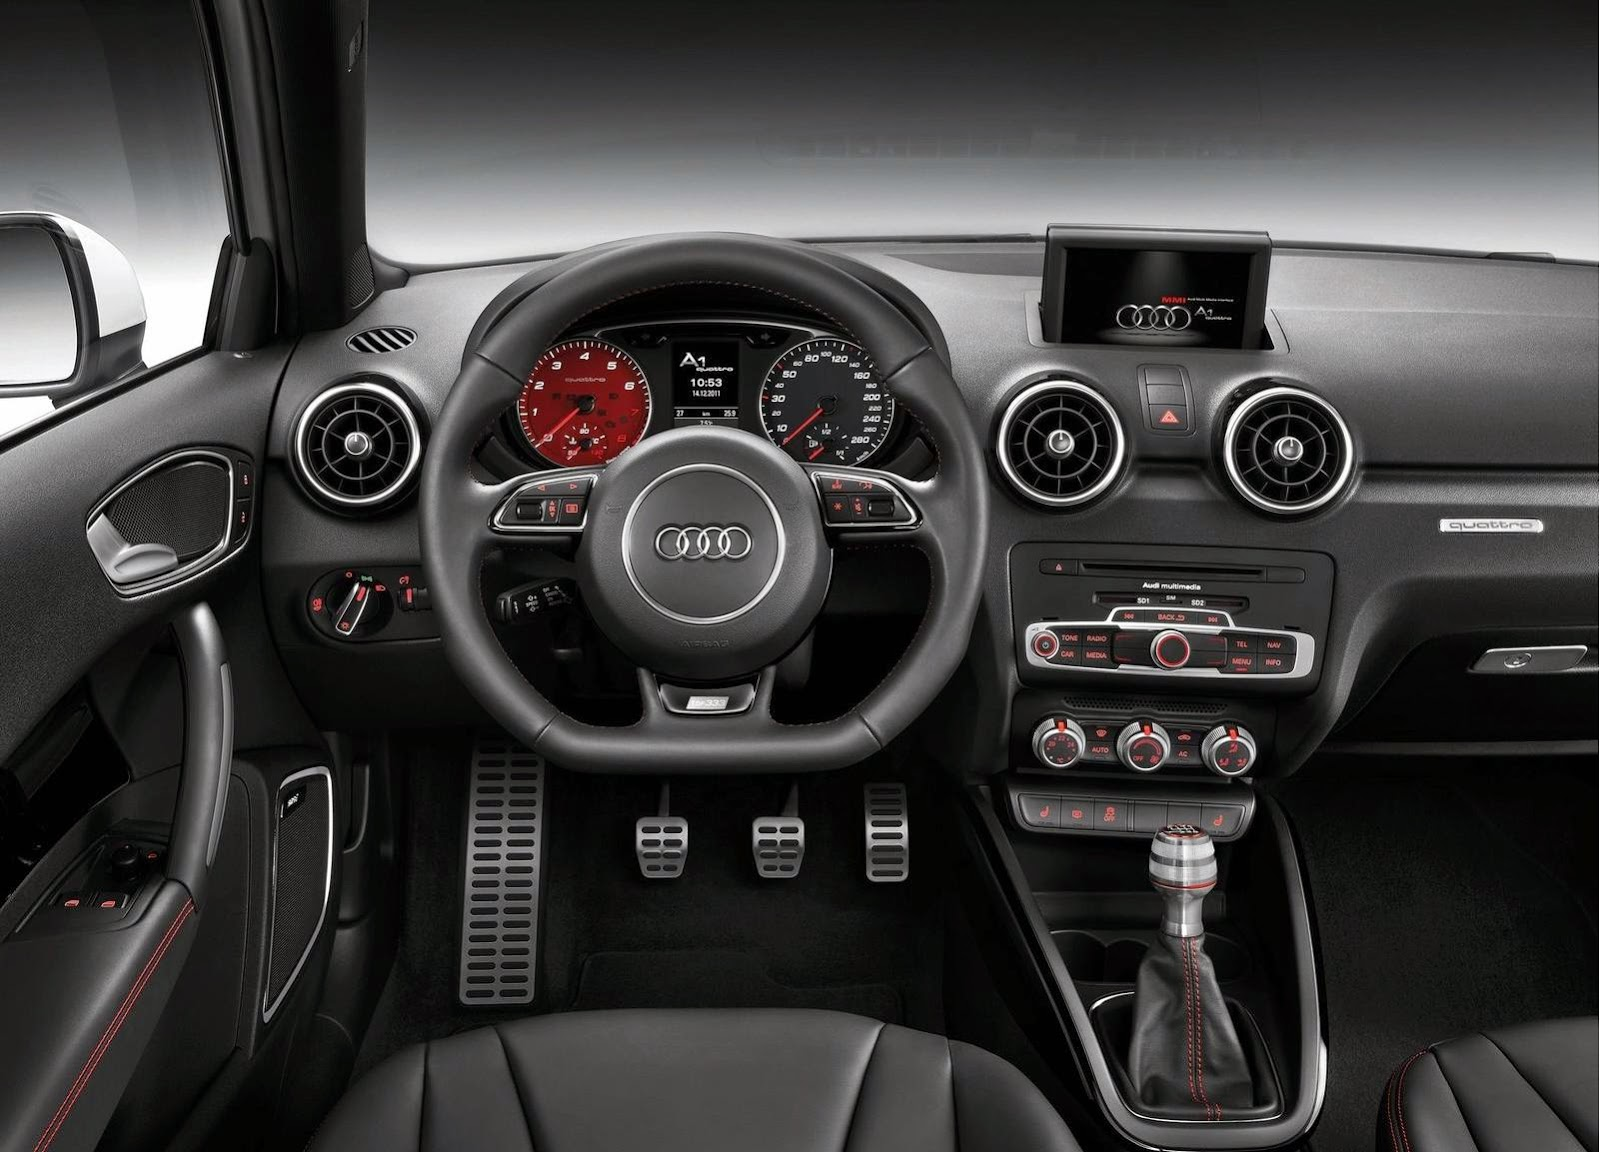 Audi A1 quattro 2013 Widescreen Wallpaper